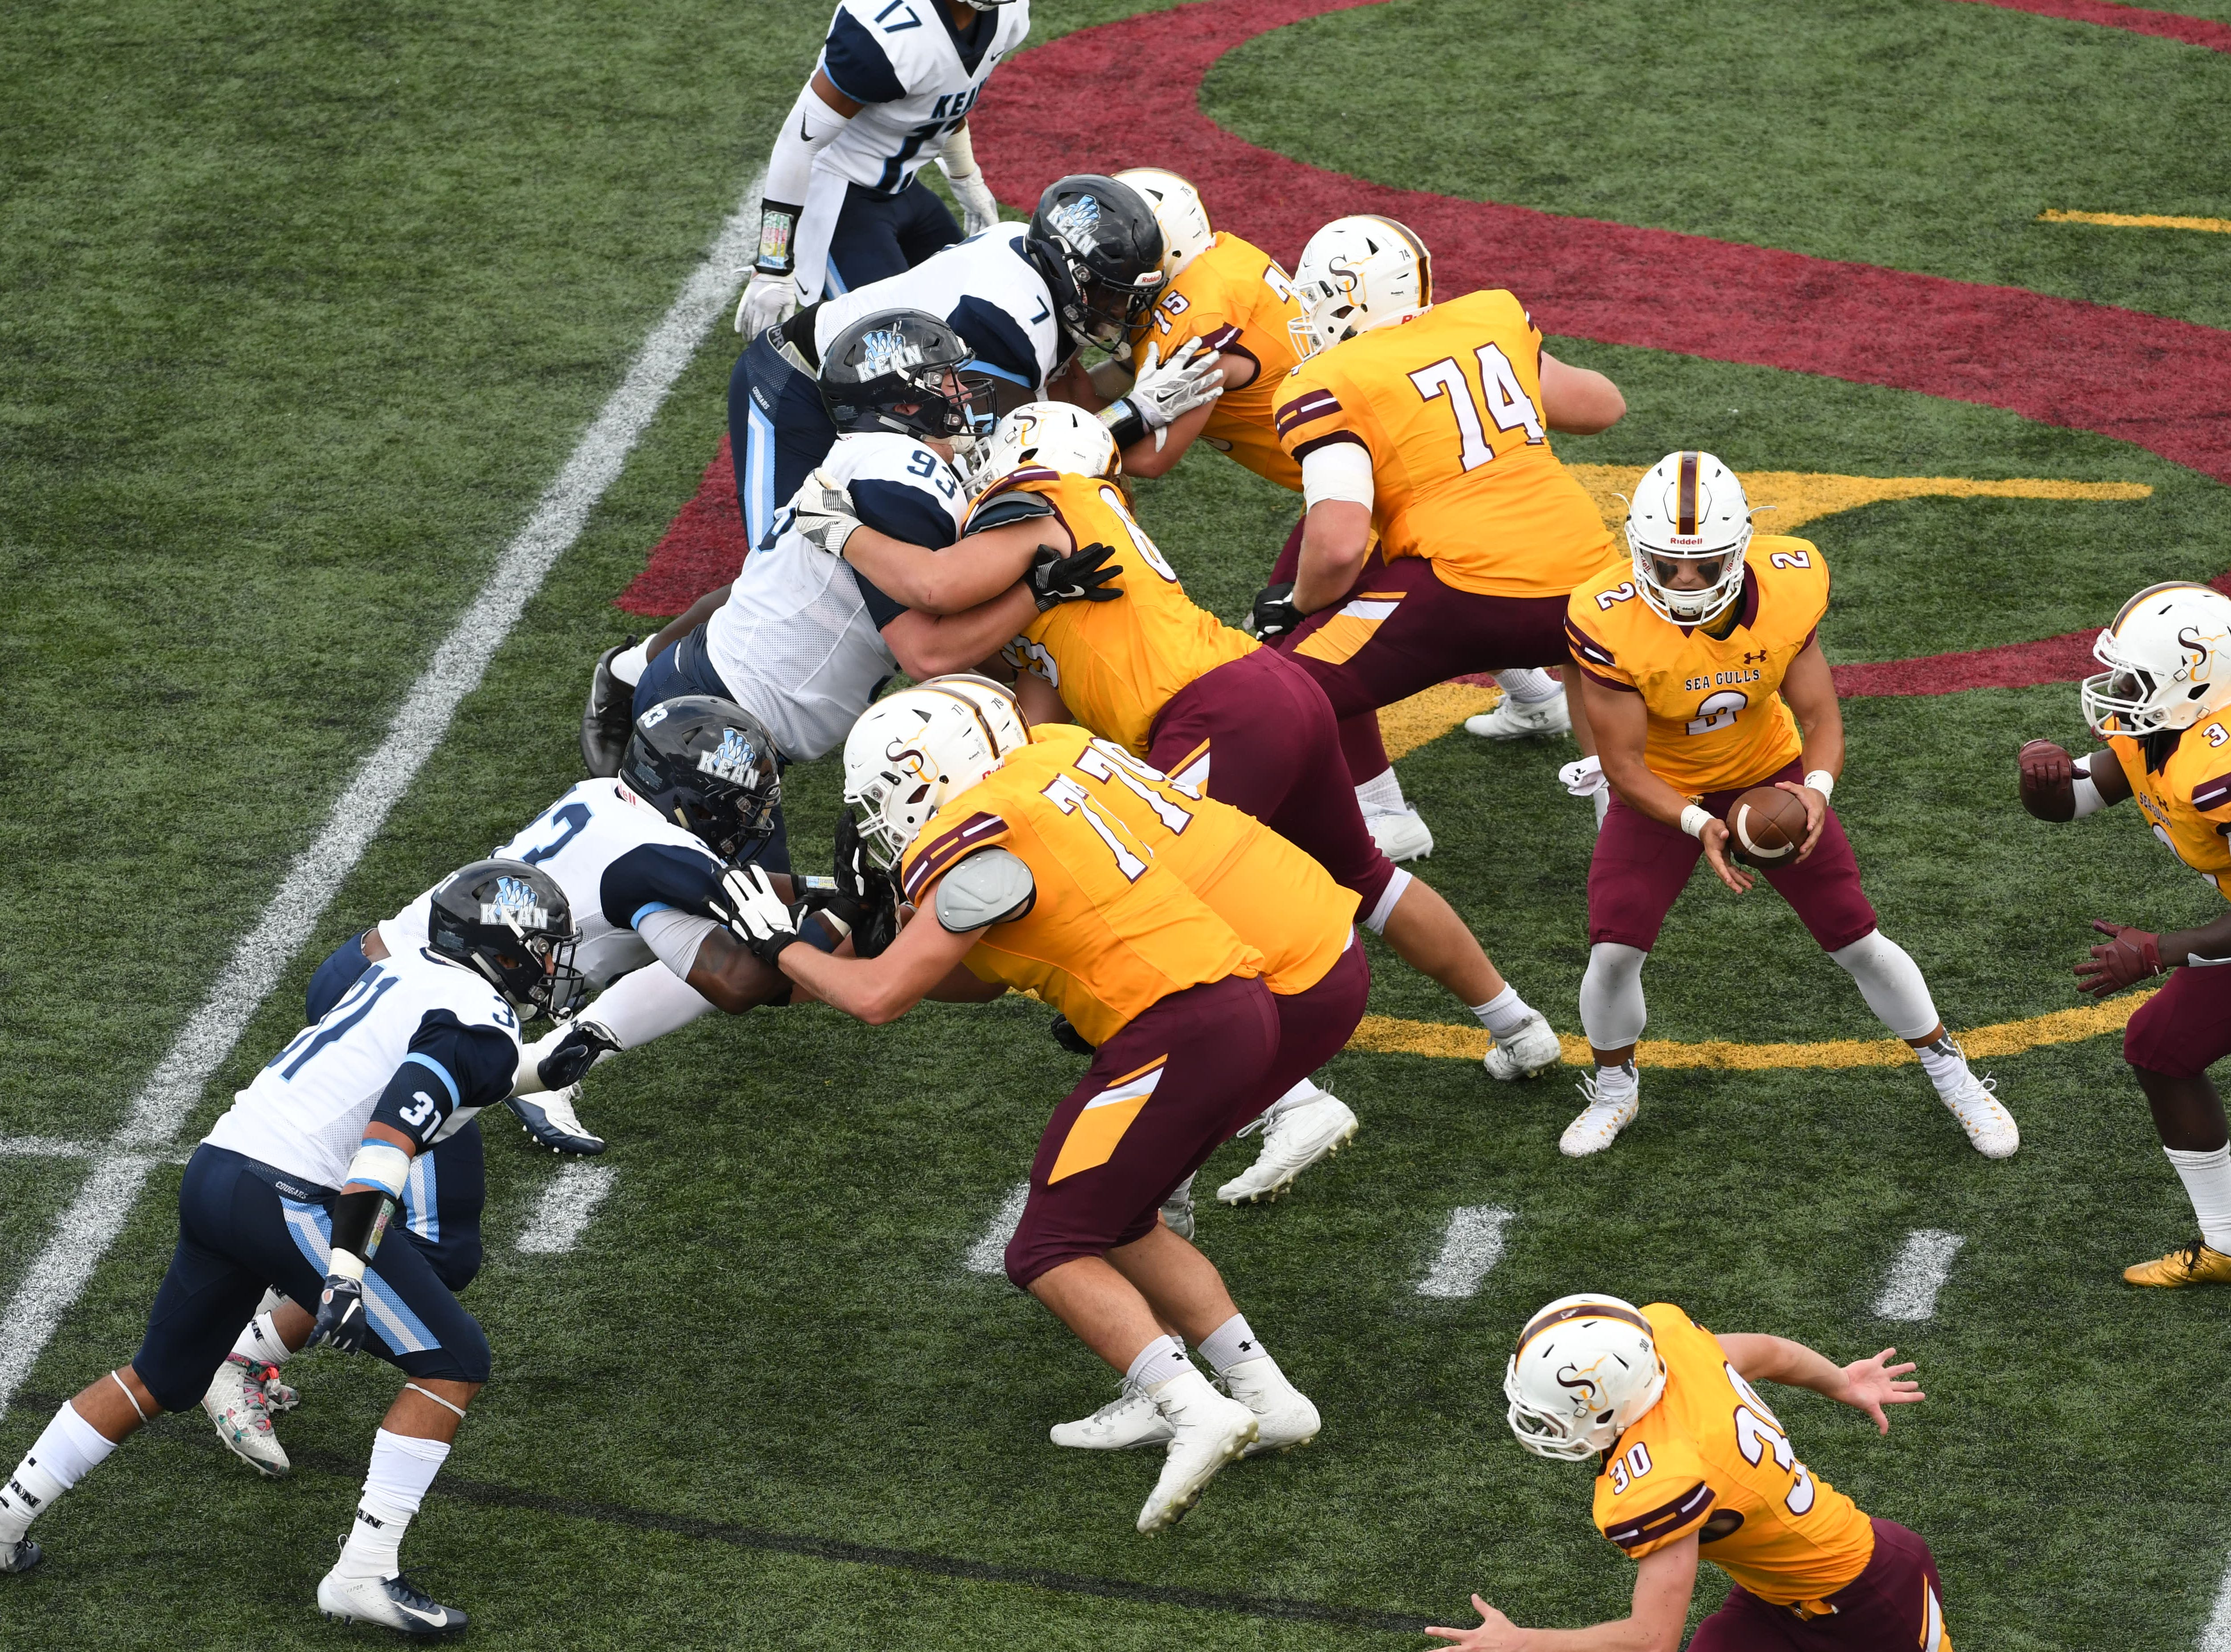 Salisbury's Jack Navitsky with the hand off during the game against Kean on Saturday, Sept. 15,2018 at Seagull Stadium